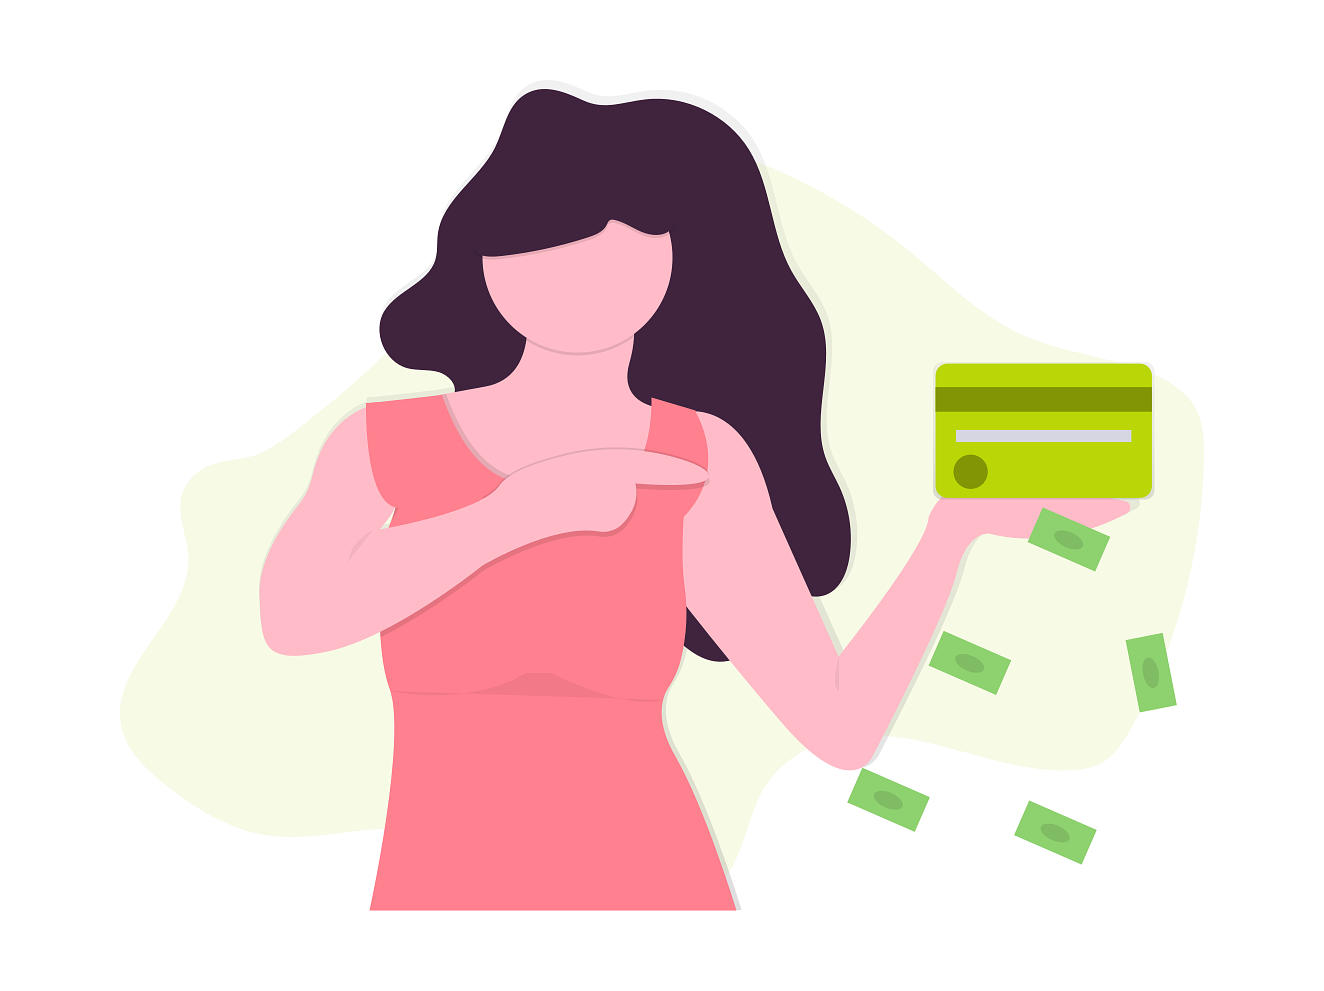 undraw_credit_card_payment_12va